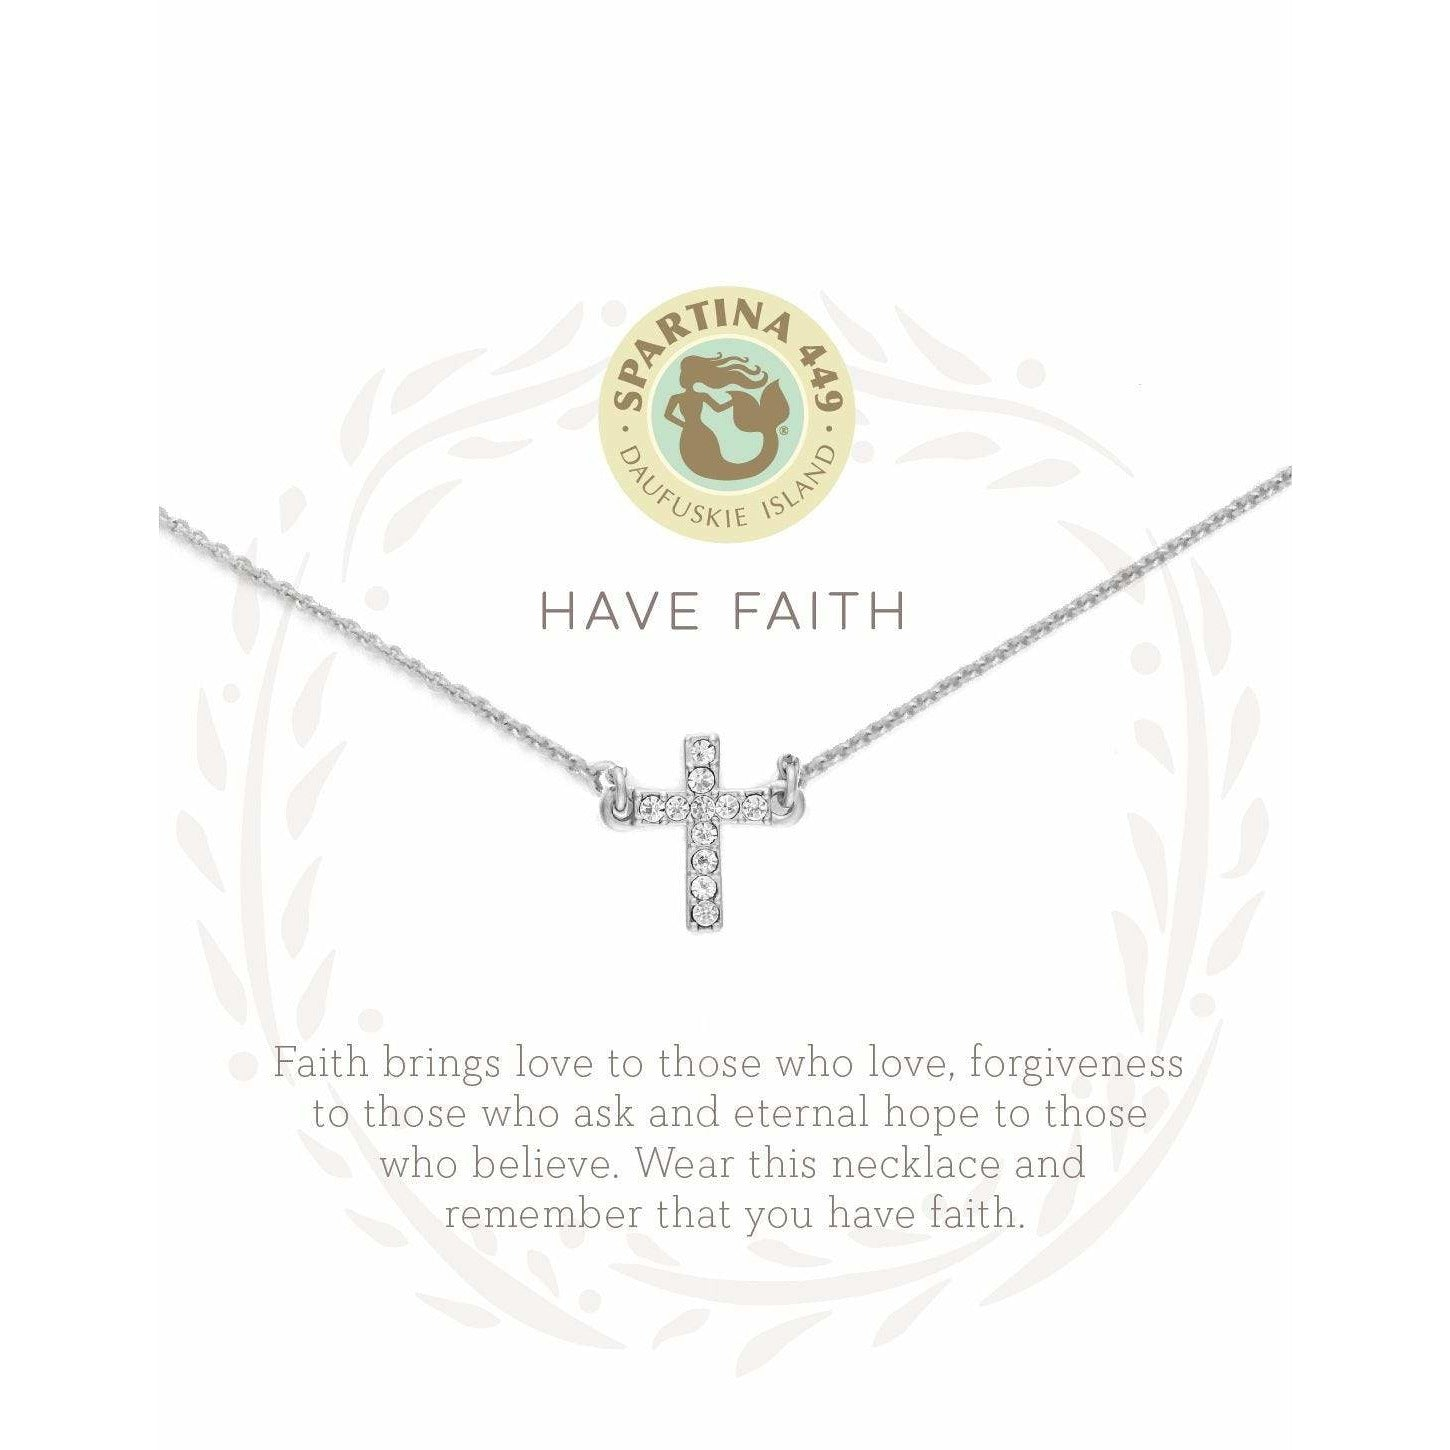 Spartina 449 SEA LA VIE HAVE FAITH NECKLACE